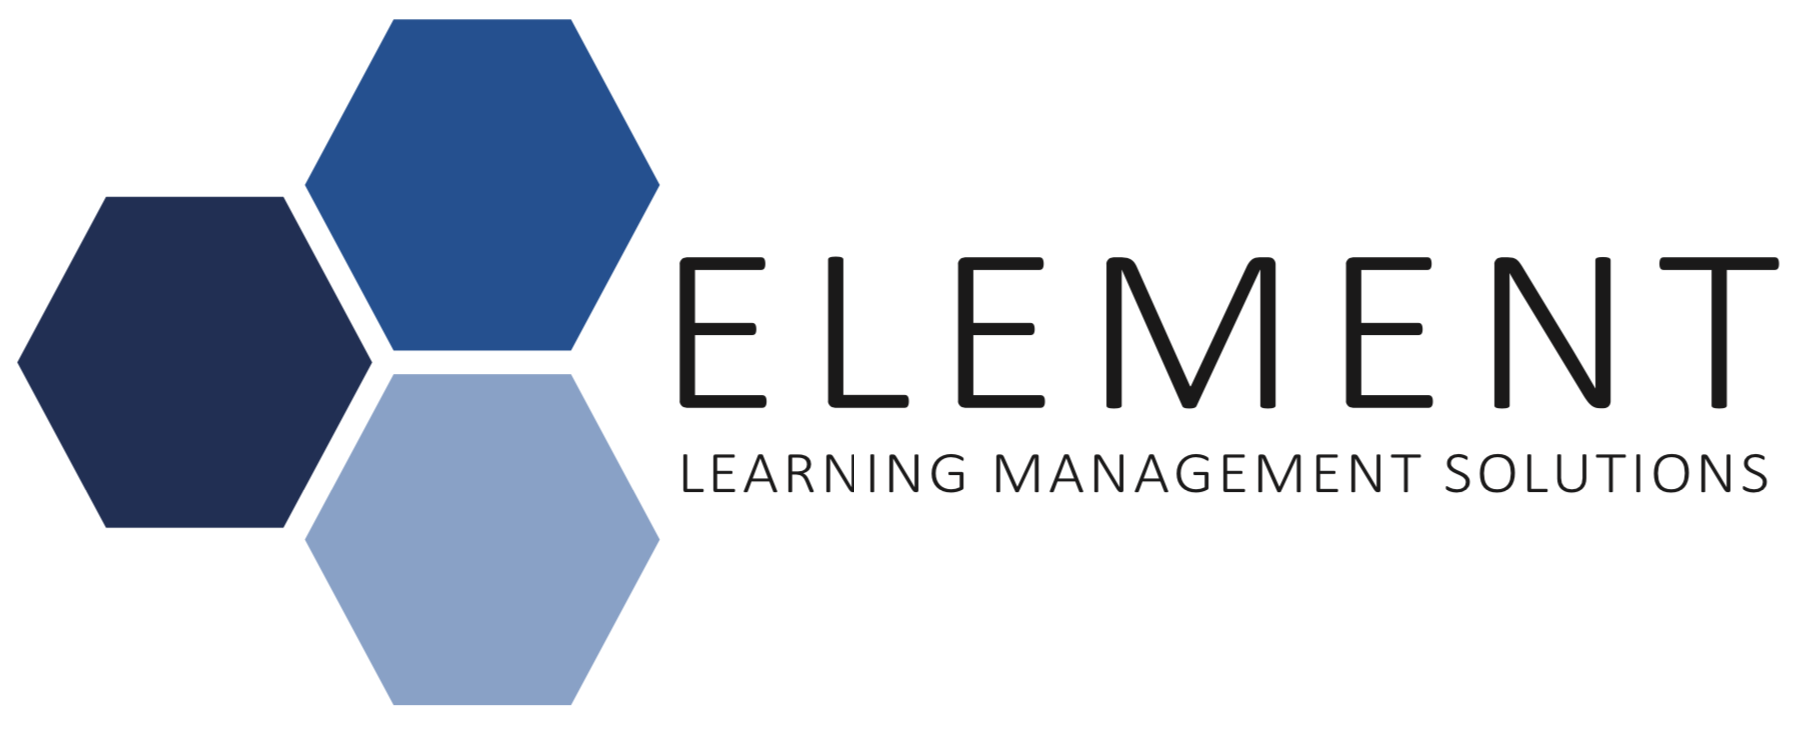 Element Learning Management Solutions